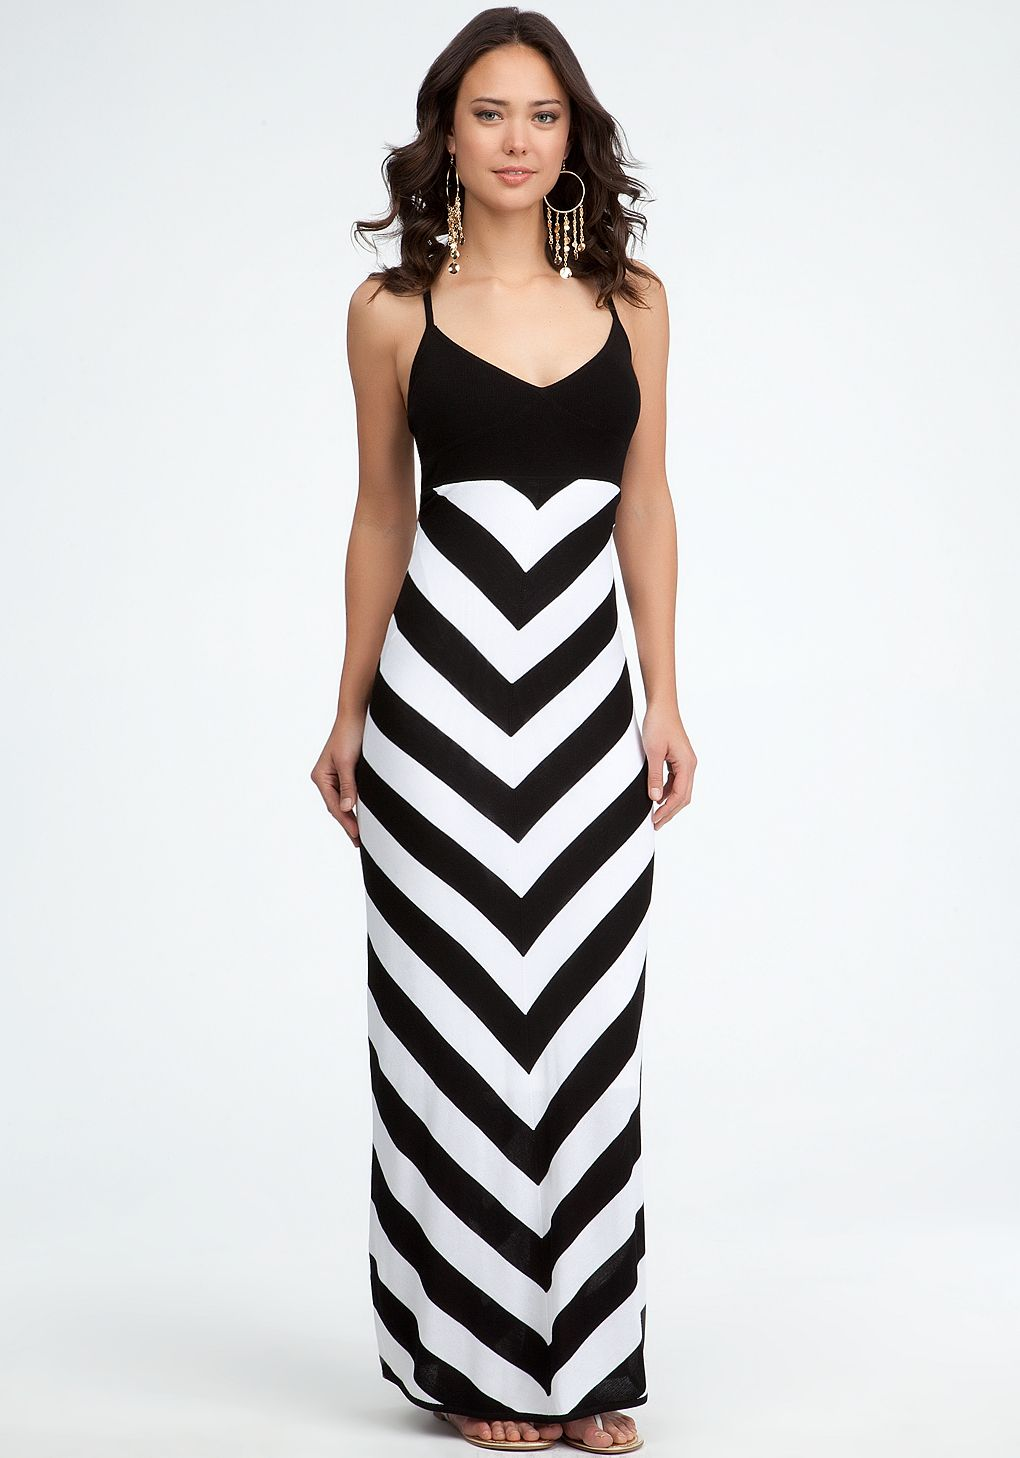 Fashion week White and Black striped maxi dress bebe for lady